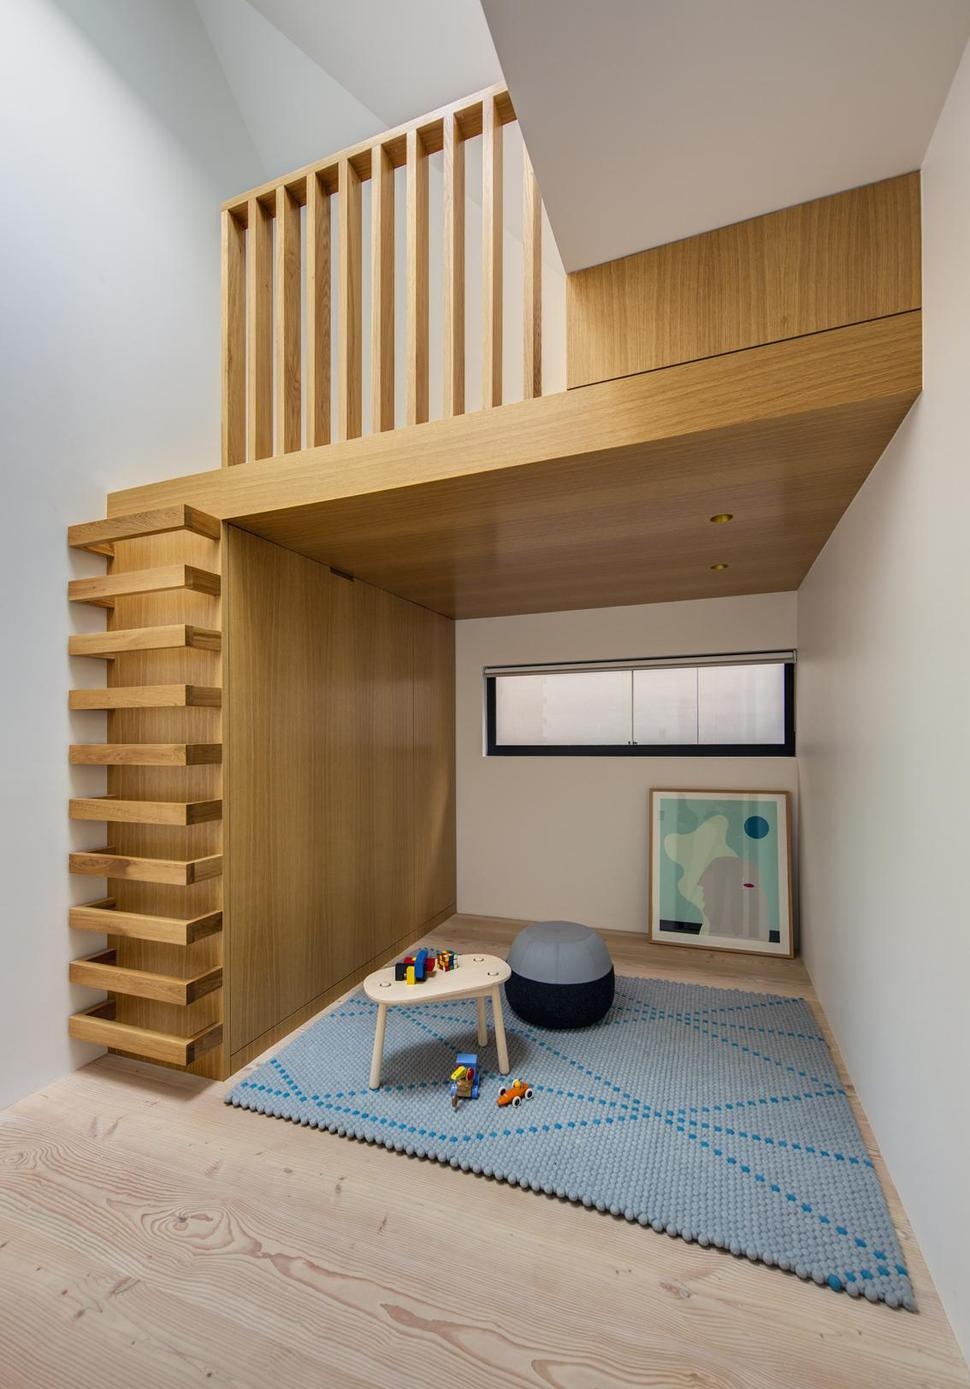 Ordinaire View In Gallery House Interesting Wooden Staircase Design Child Hideout 12